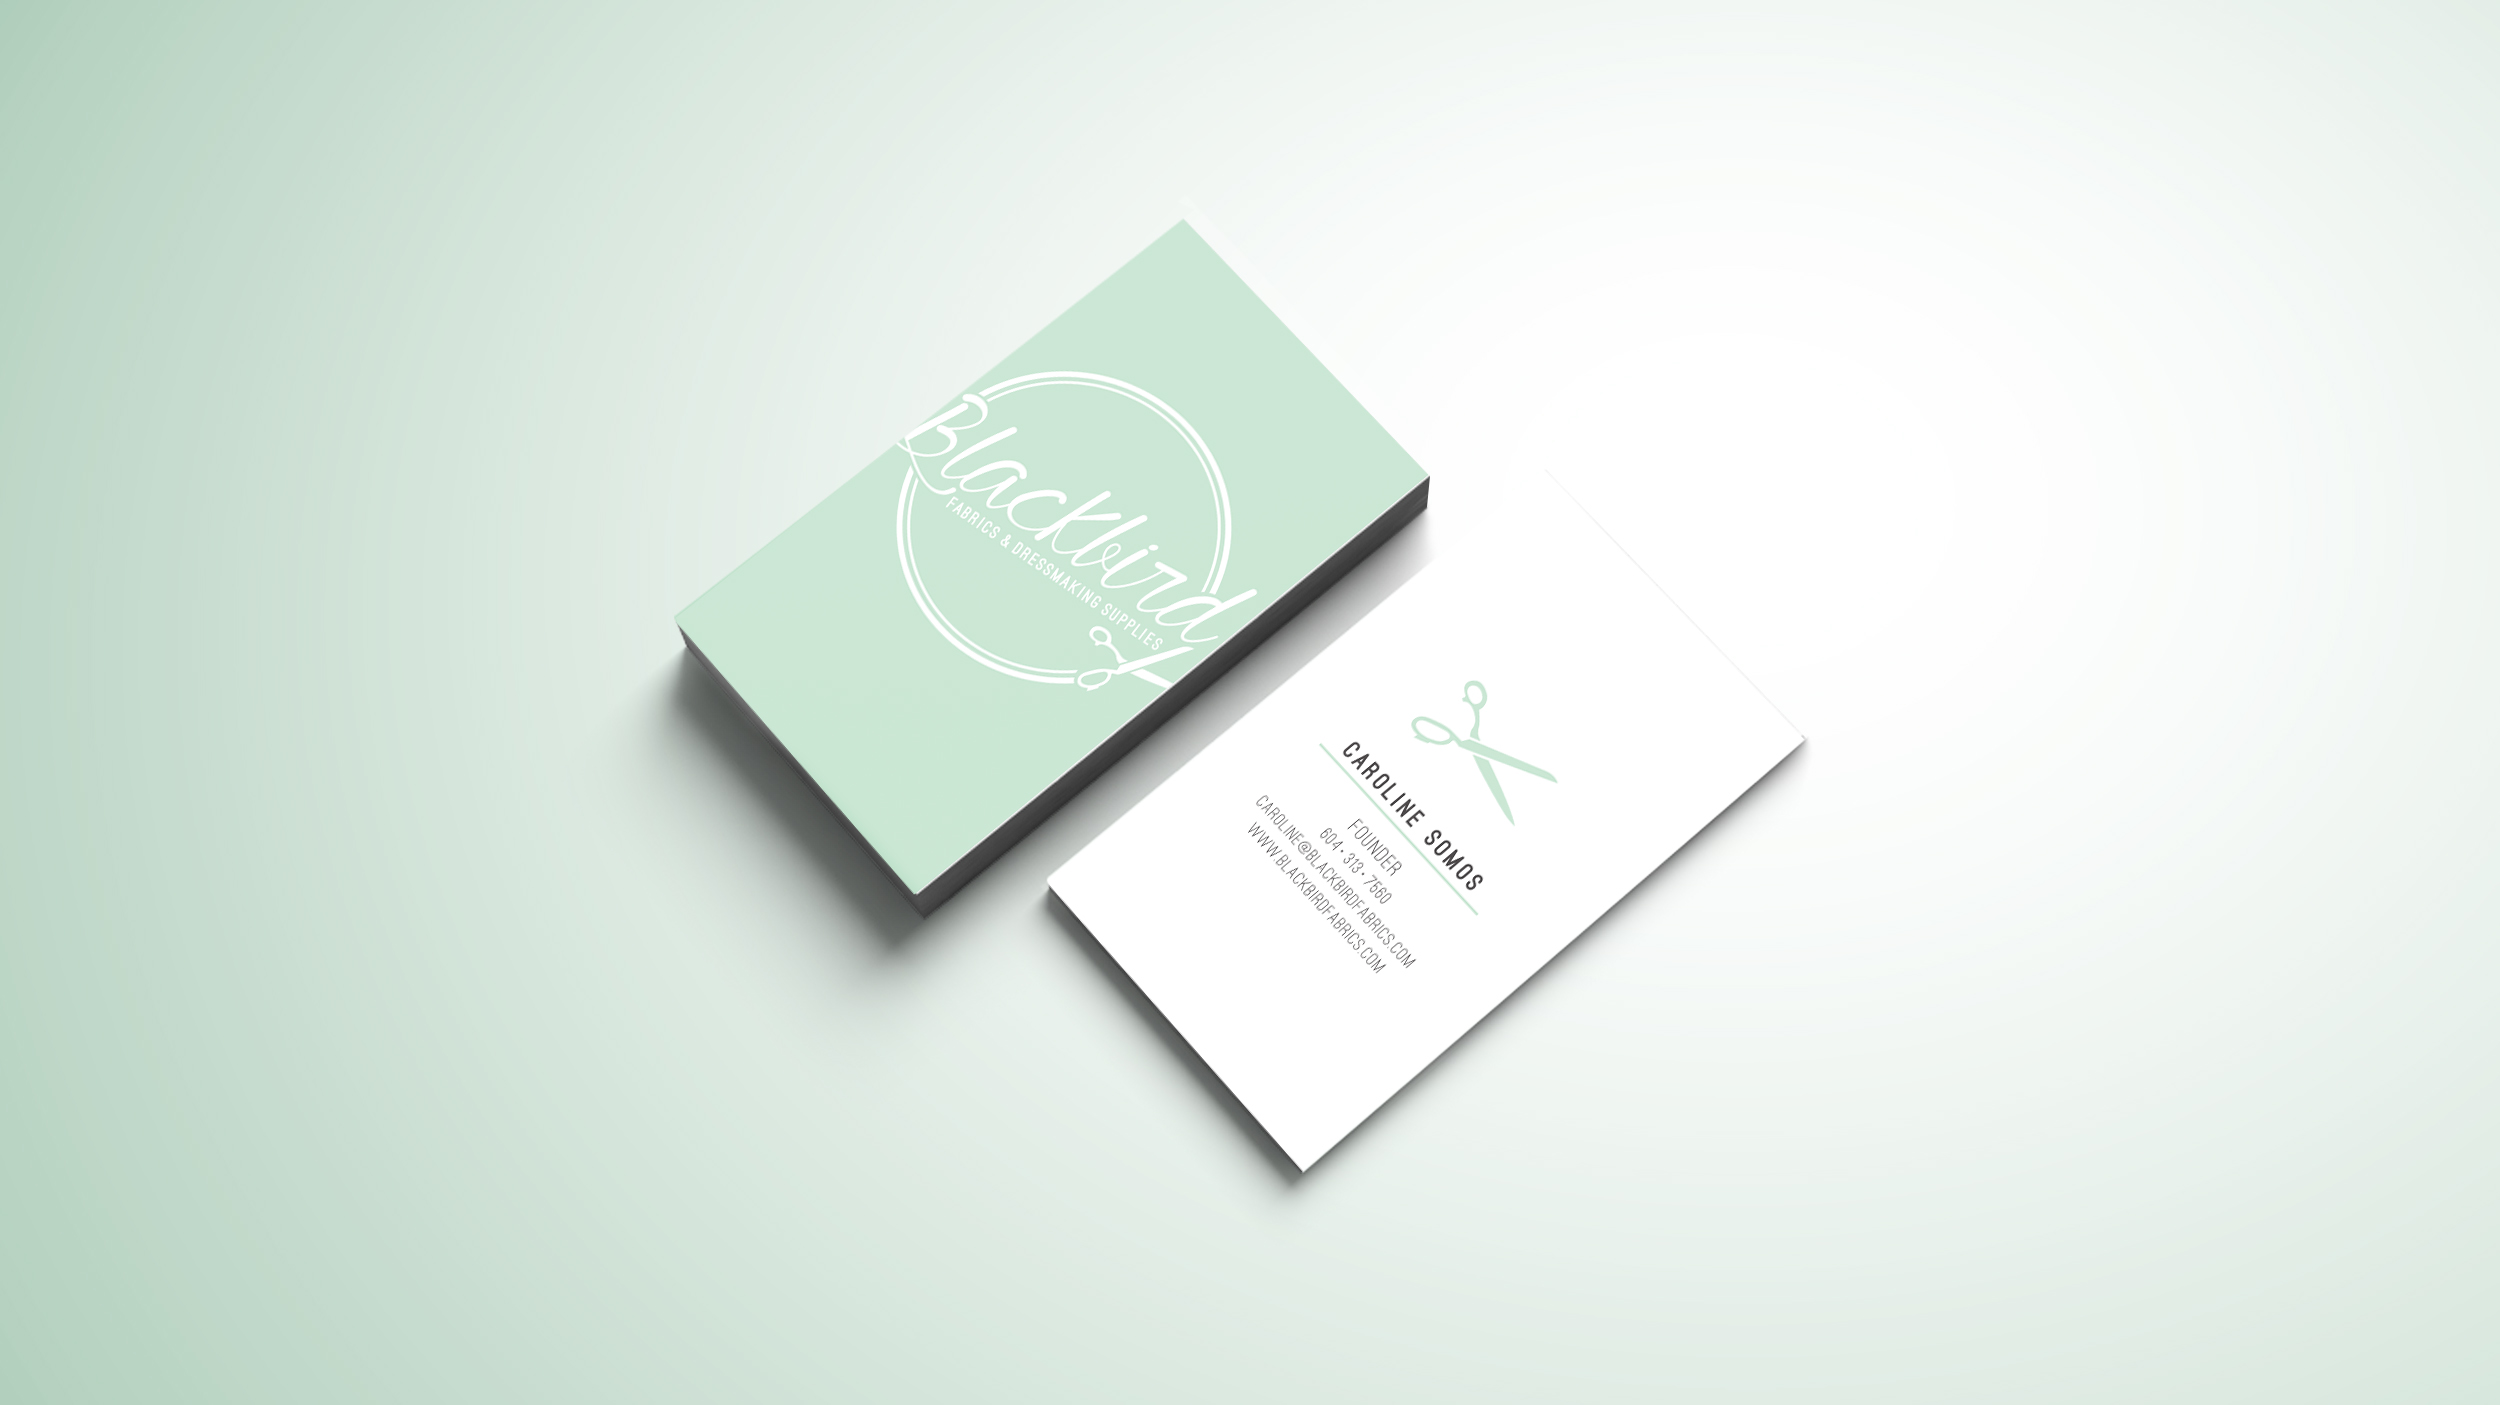 katelynbishop_design_blackbird_businesscards1